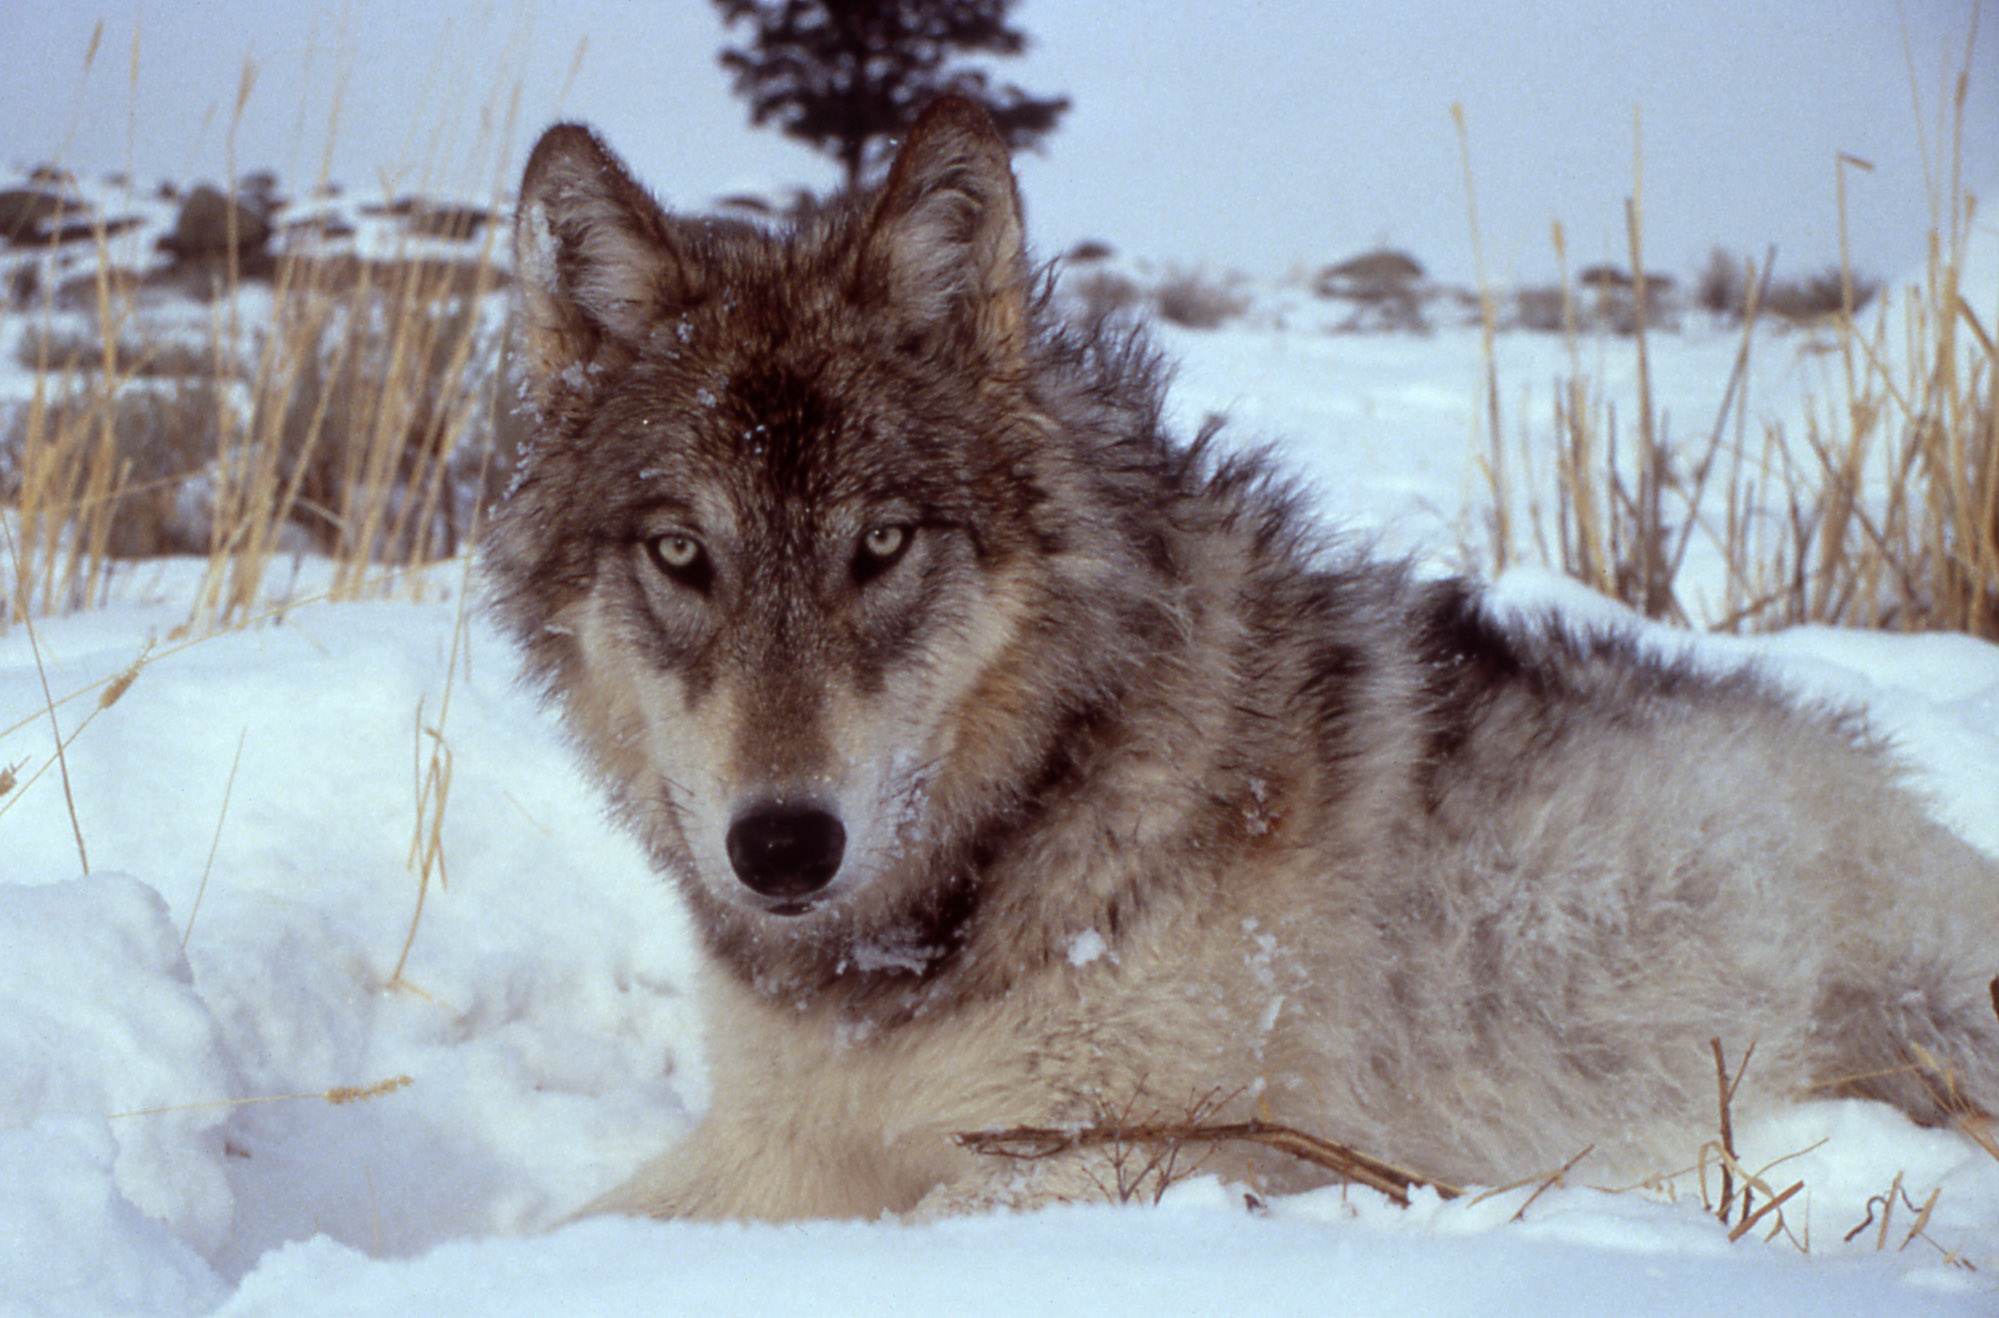 Collared wolf from the Druid pack, Yellowstone National Park | [public domain]